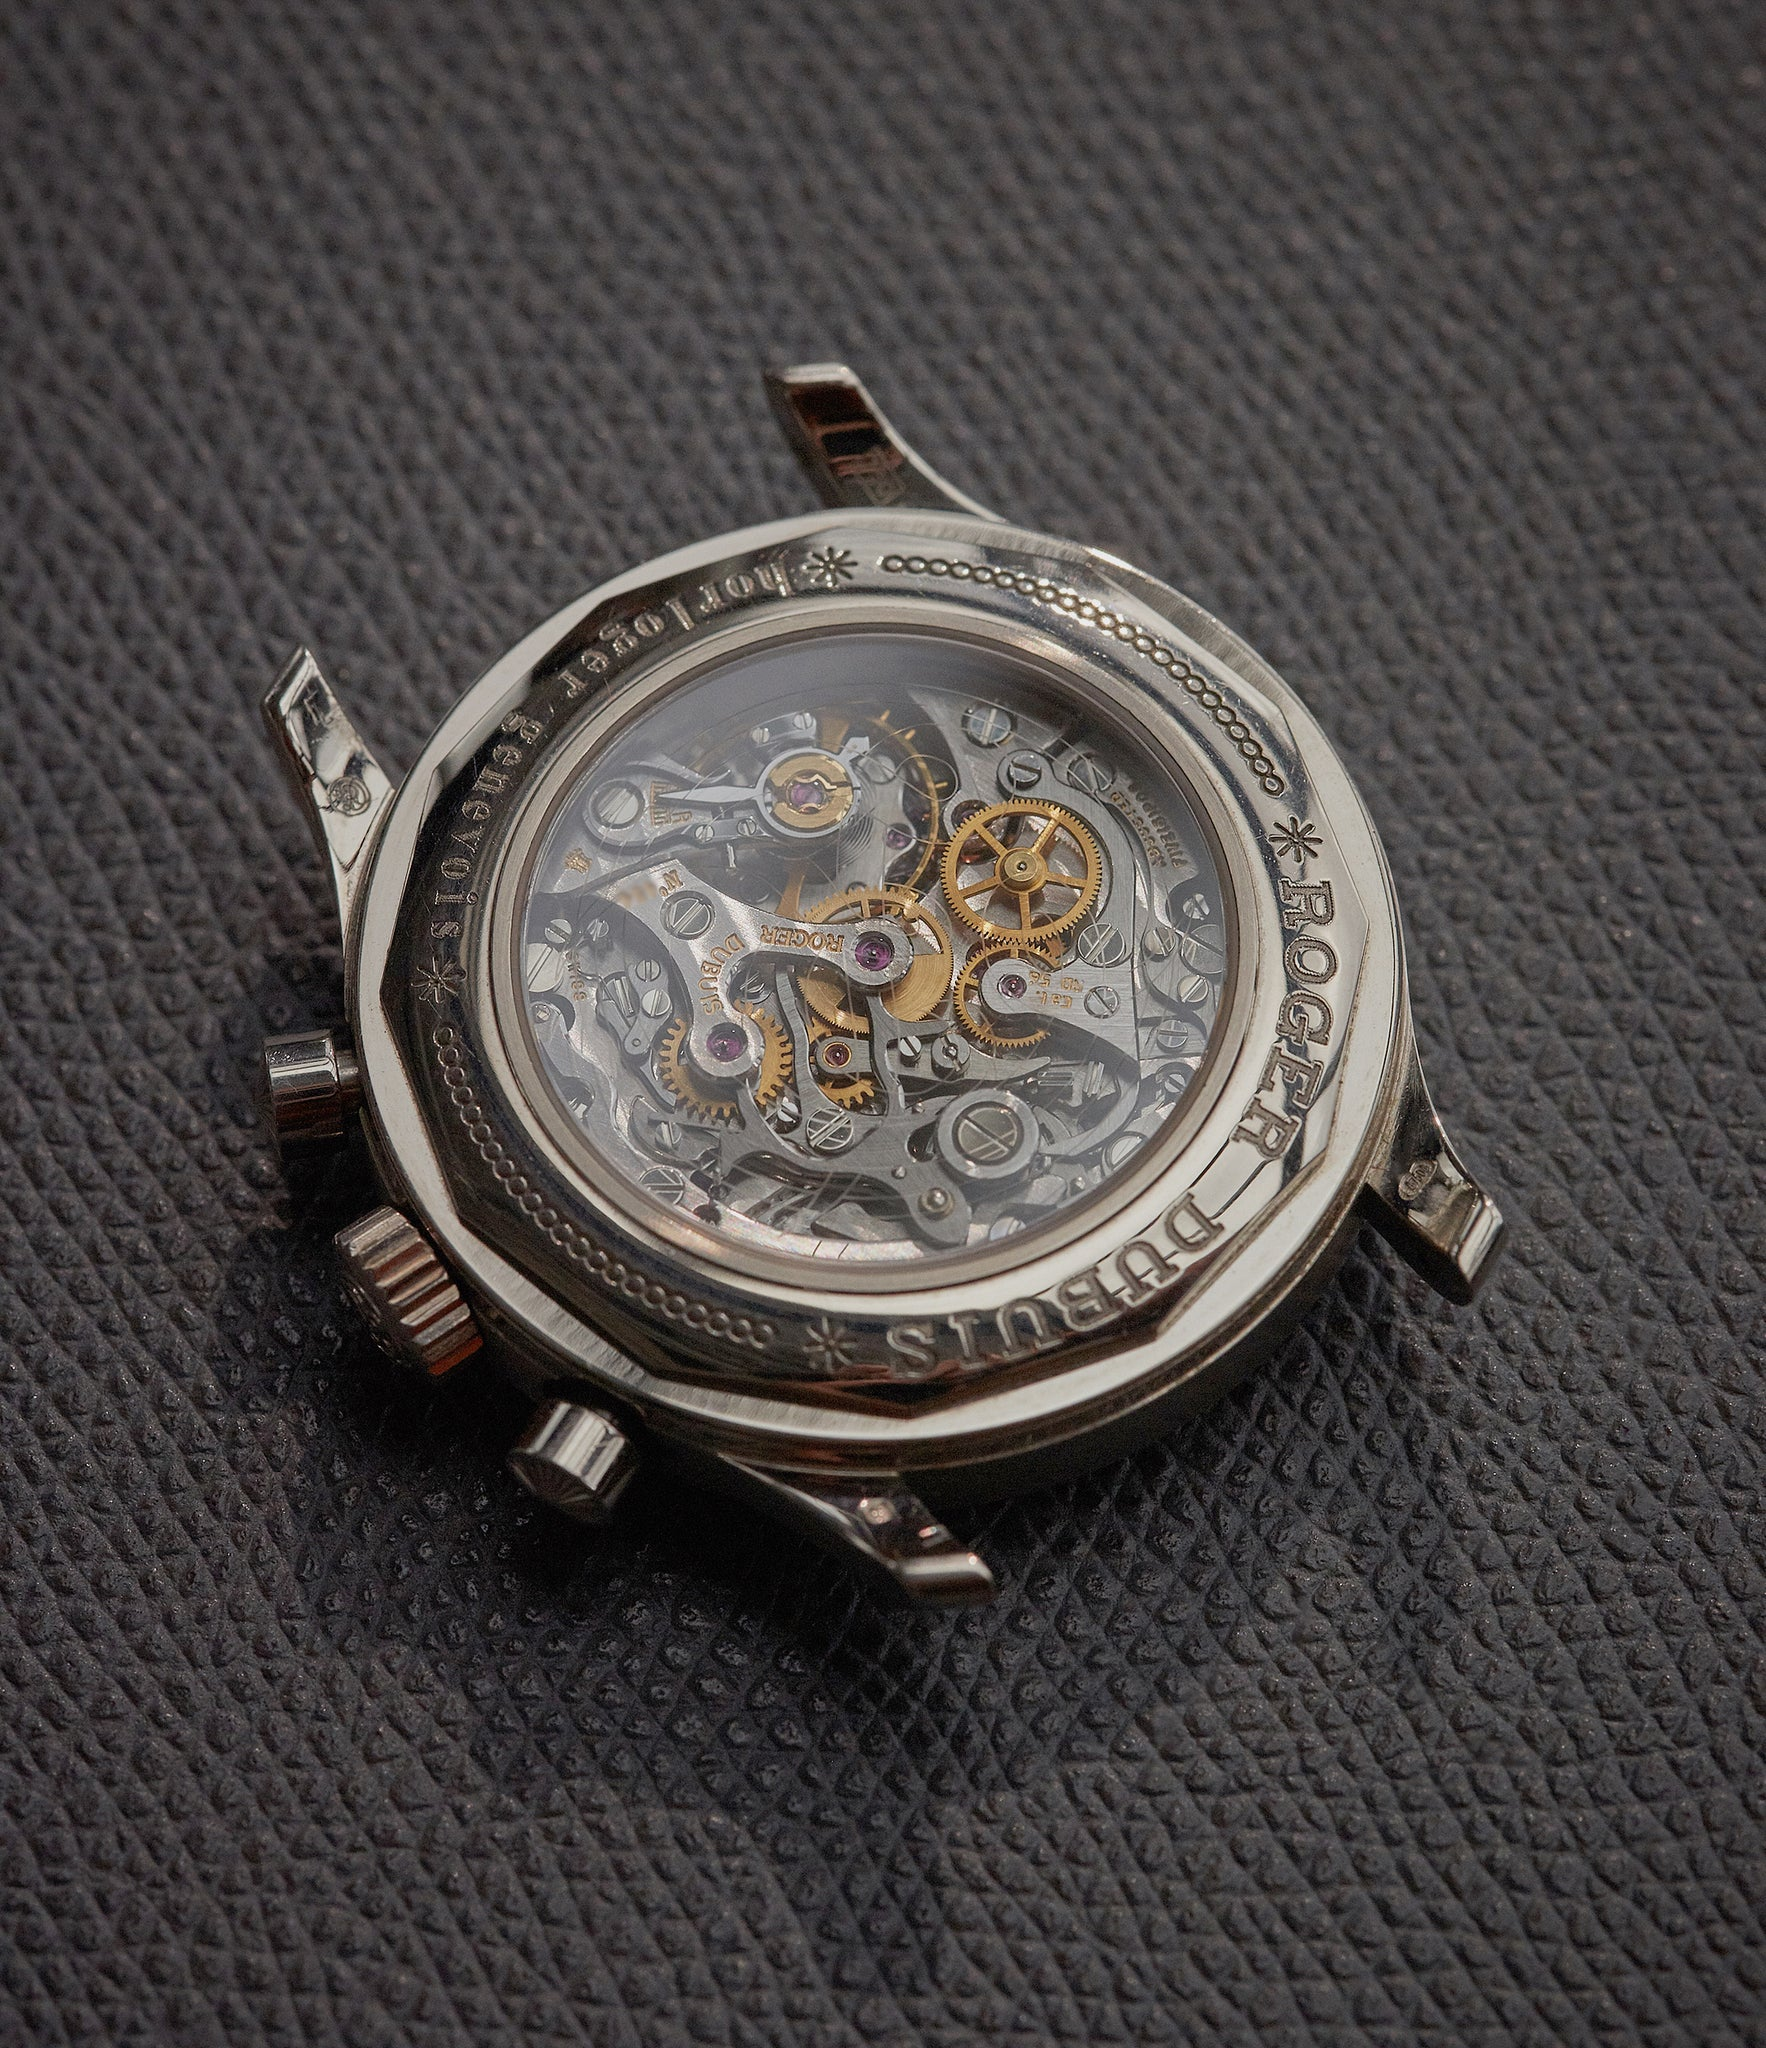 Movement of a Roger Dubuis Hommage Chronograph at A Collected Man London